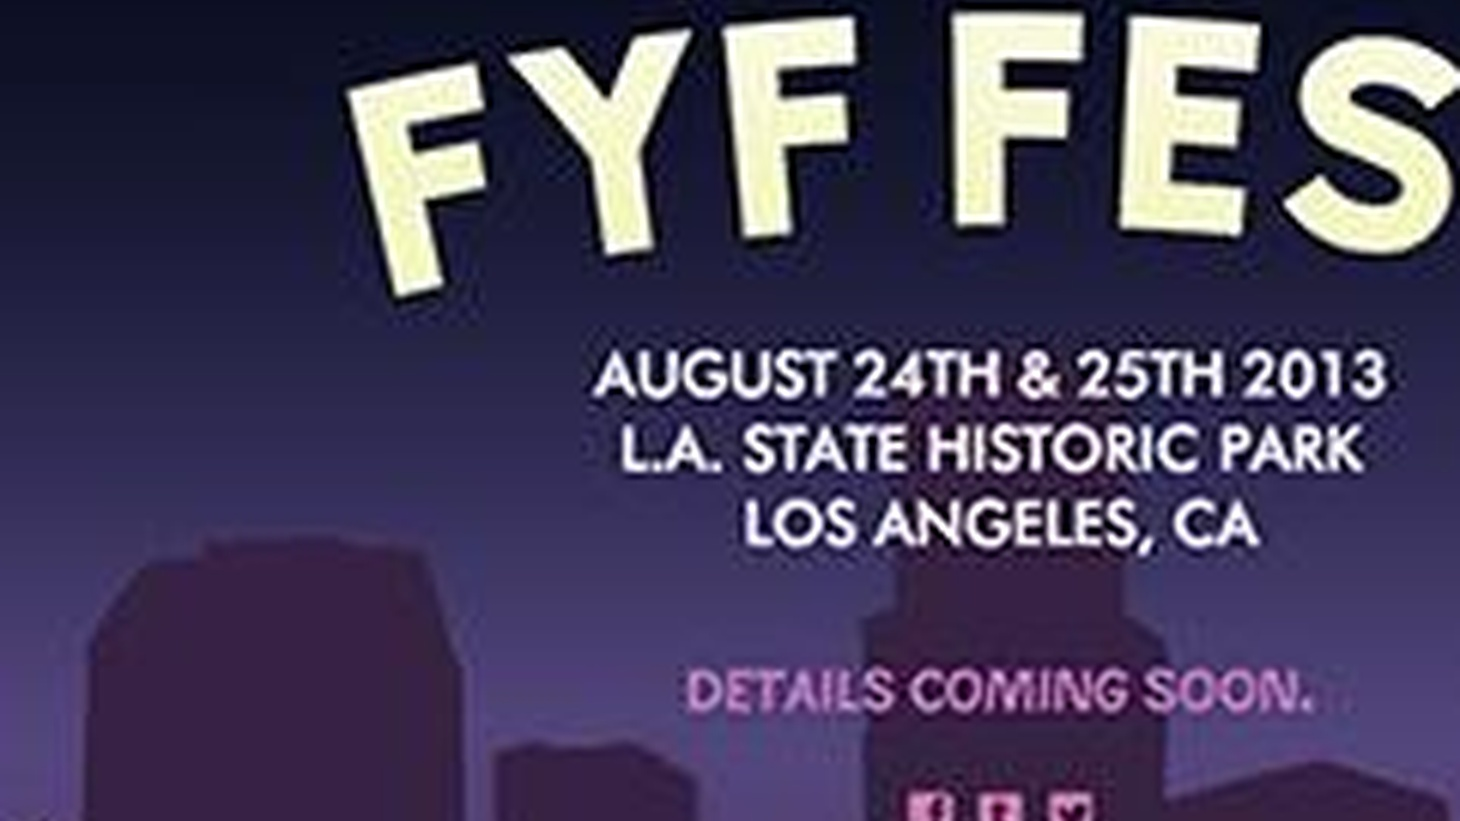 FYF Festival founder Sean Carlson drops by KCRW for the worldwide announcement of the festival line-up at 10:00am.